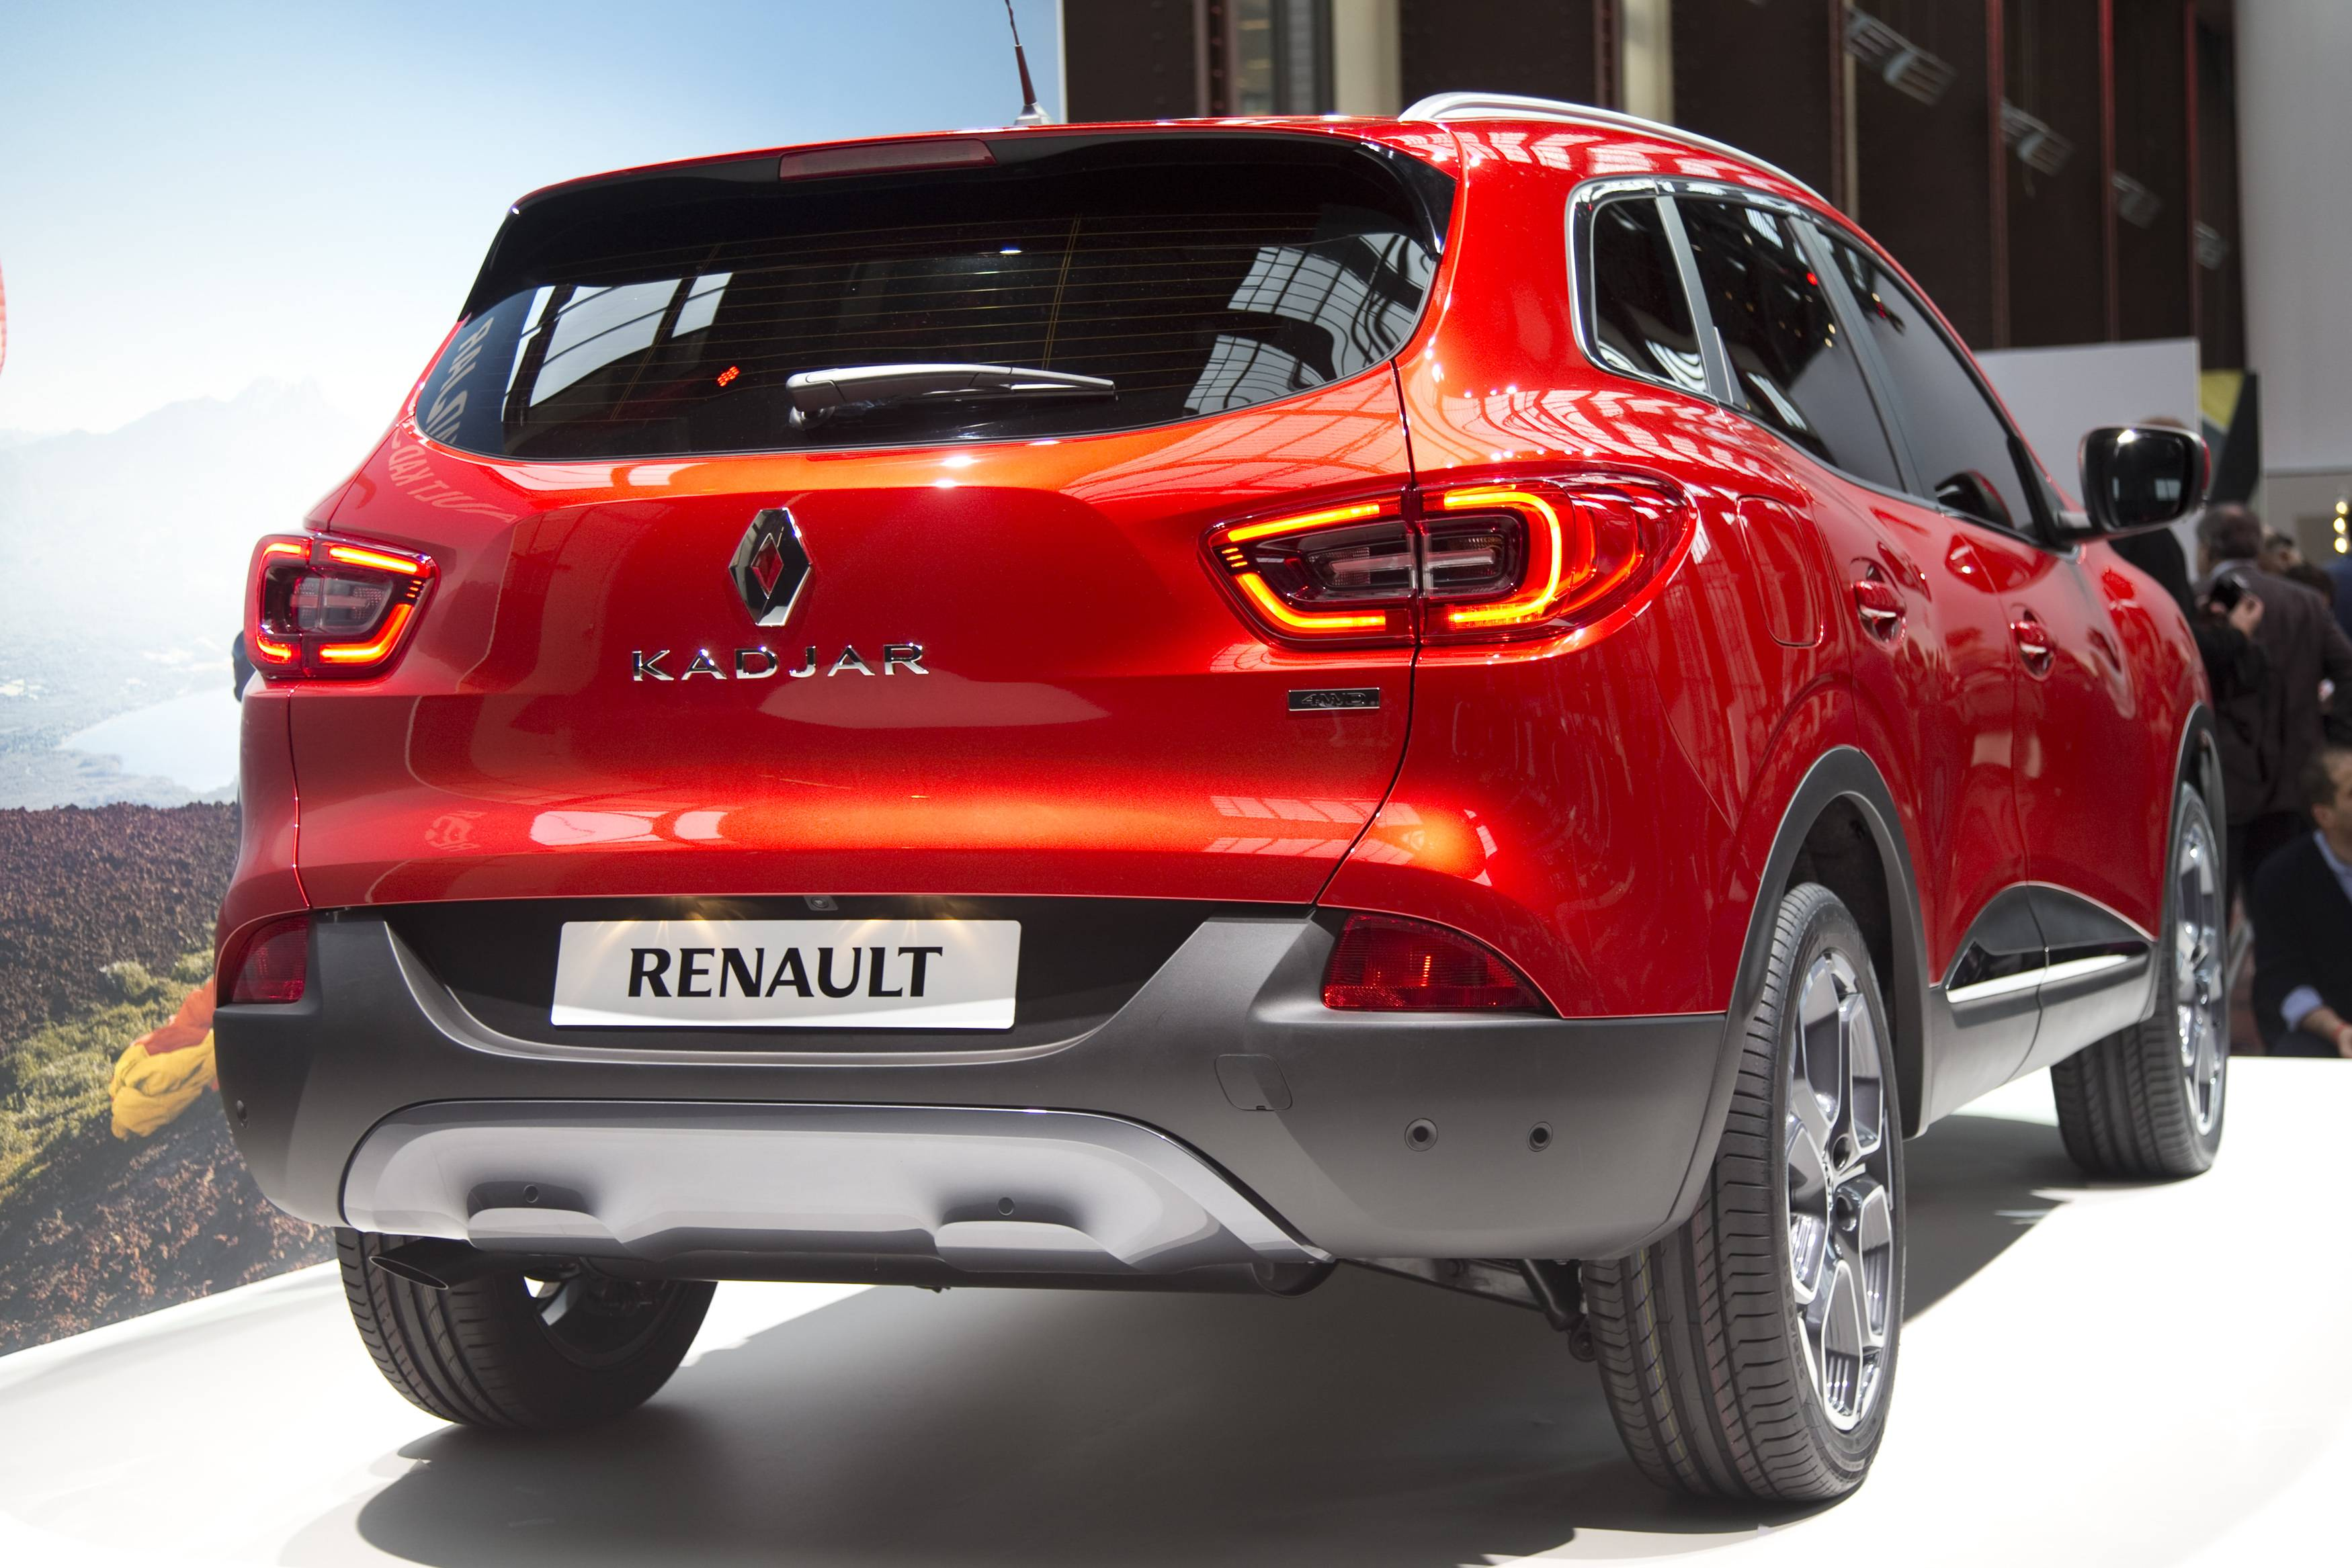 a renault kadjar a new crossover suv is seen during a. Black Bedroom Furniture Sets. Home Design Ideas